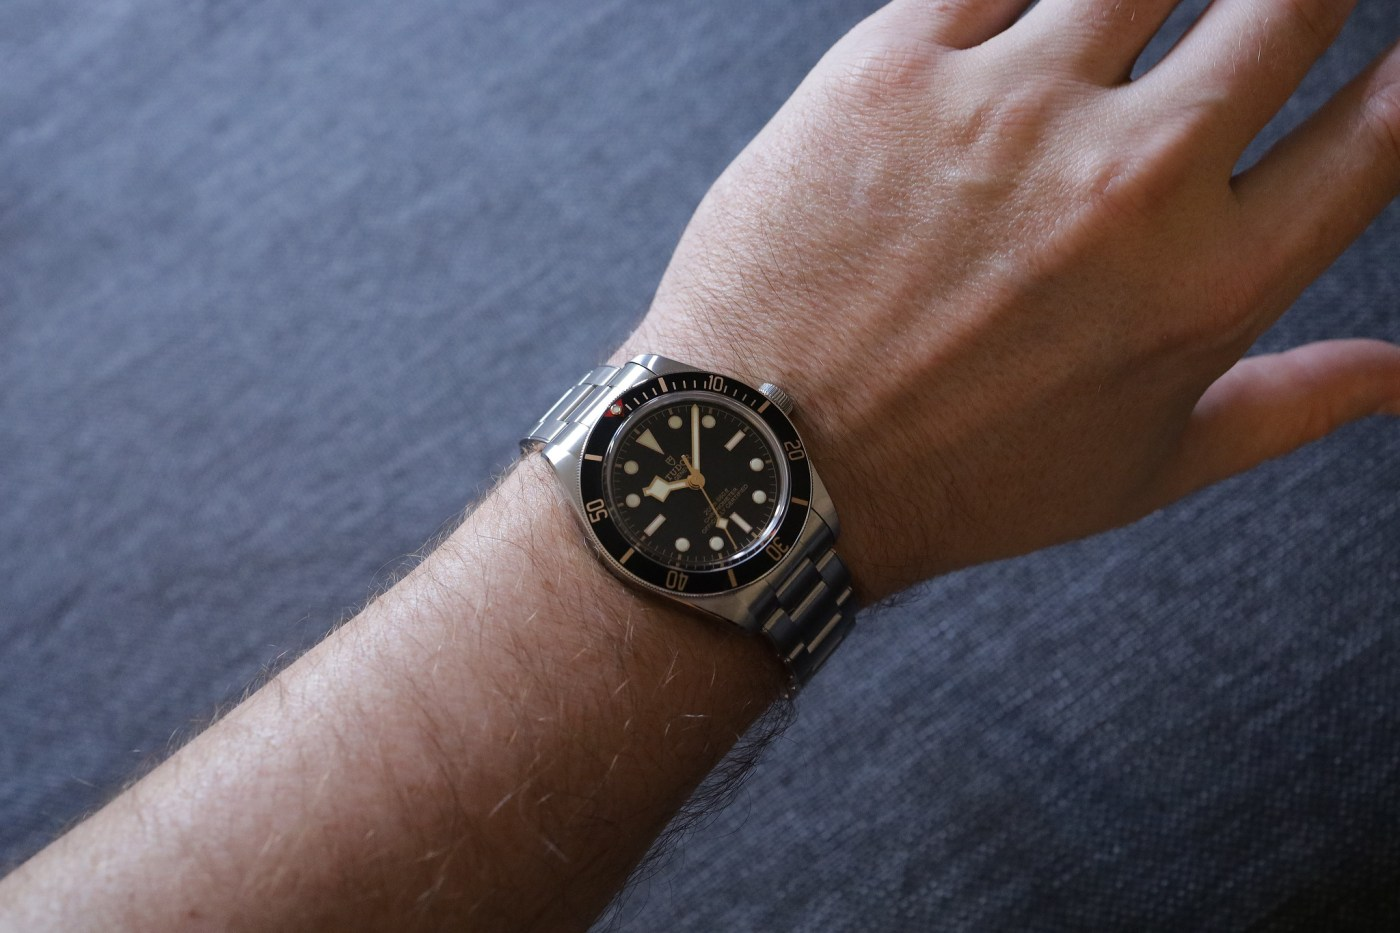 Black Bay 59 wristshot with t-shirt